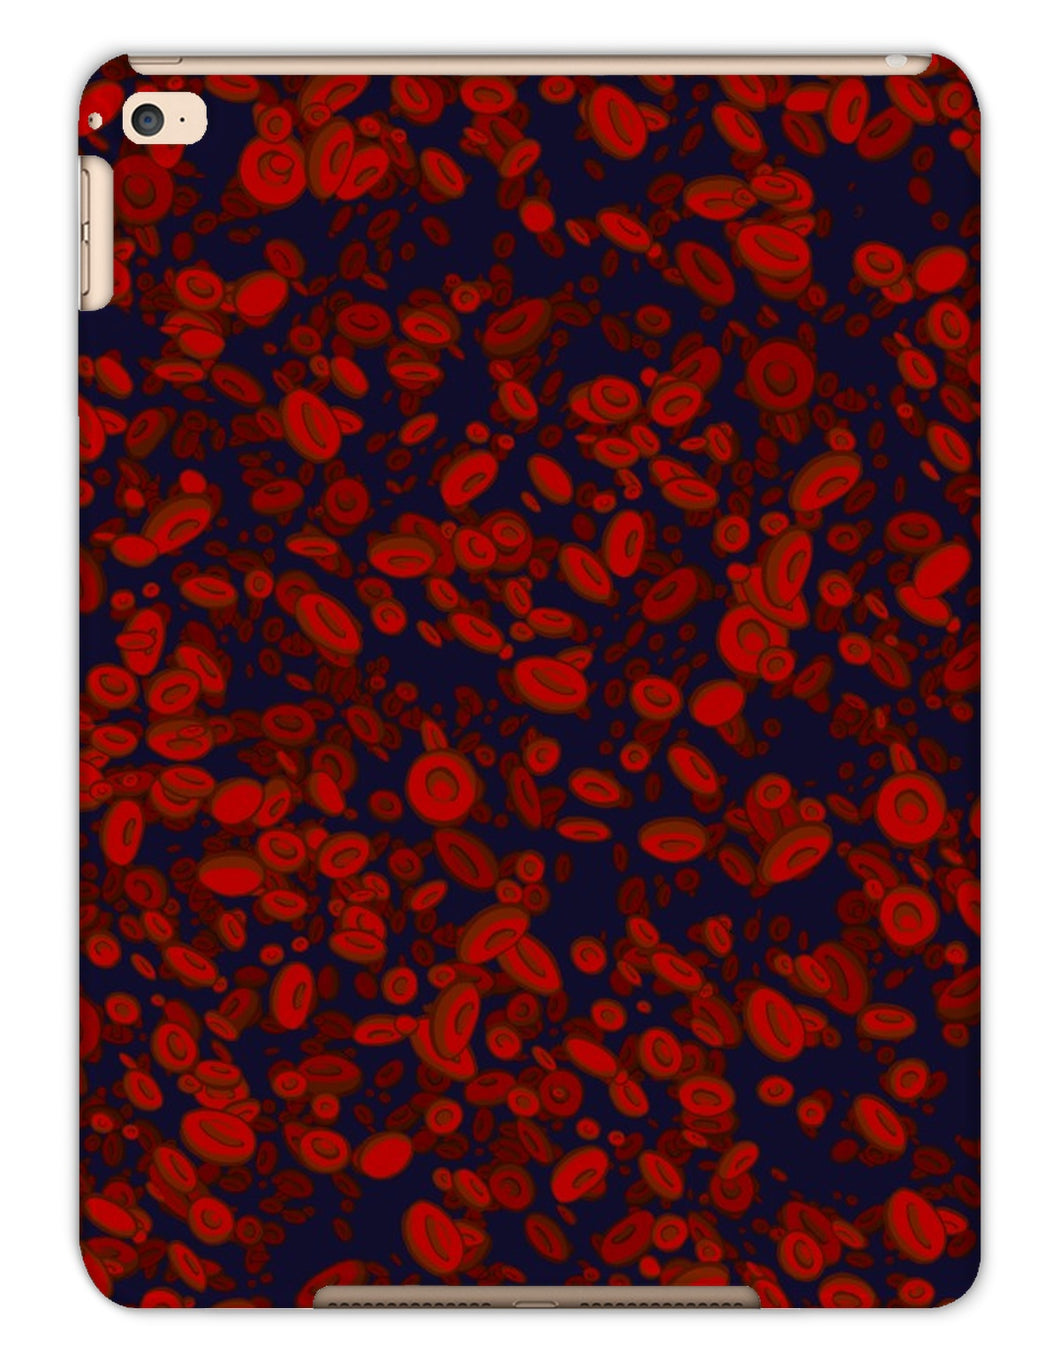 Red Blood Cells Tablet Cases